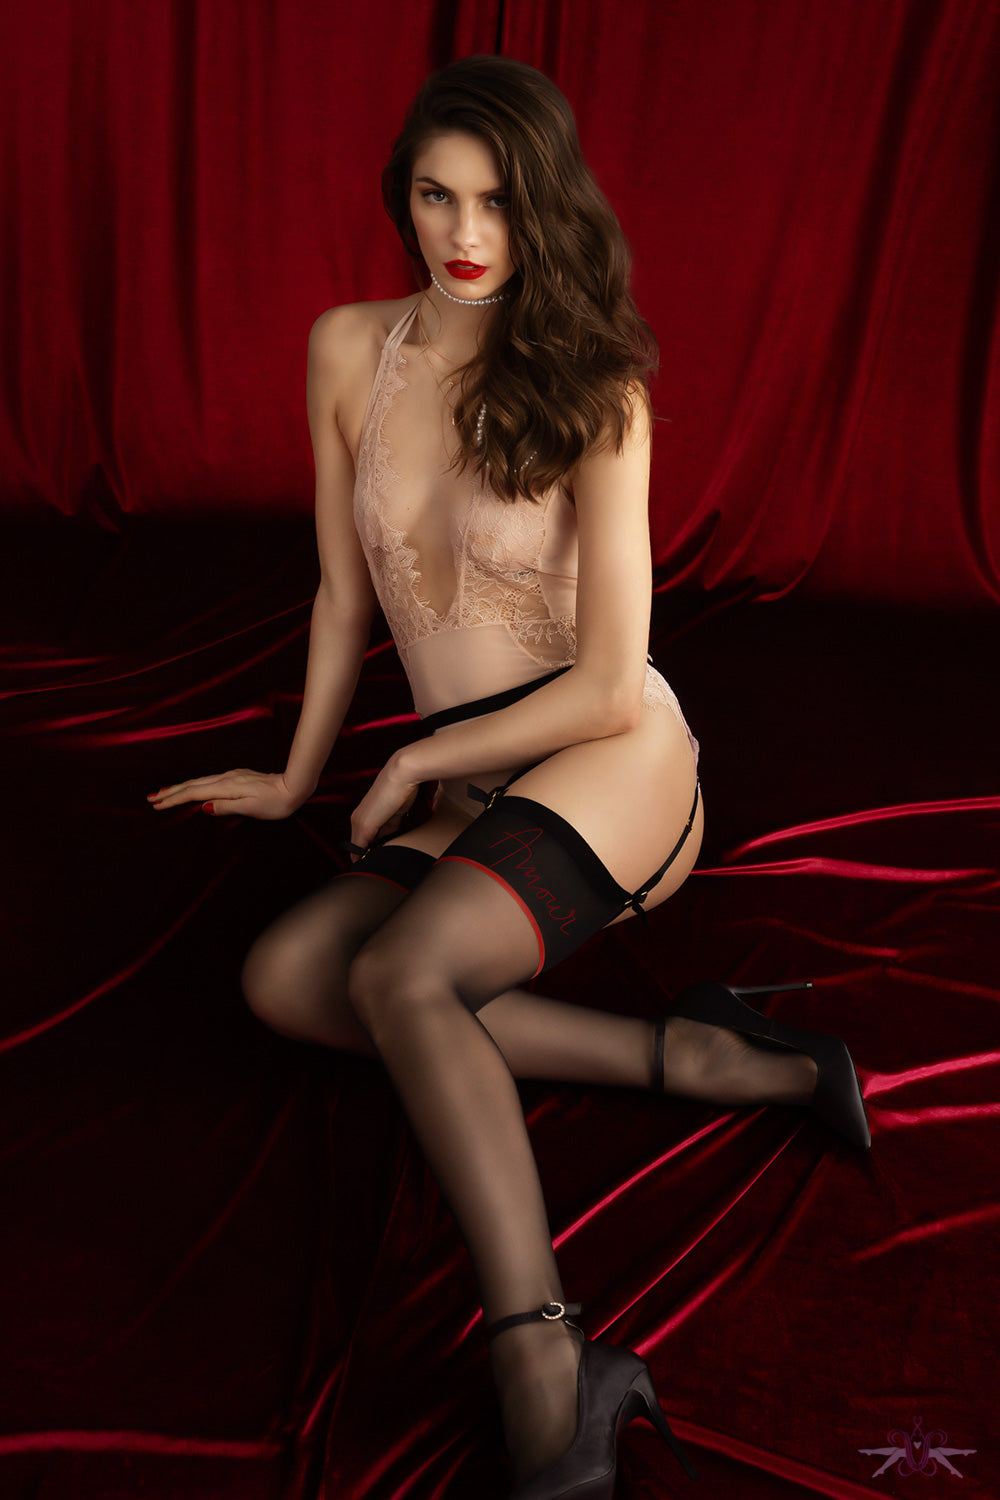 Fiore Amante Stockings - Mayfair Stockings